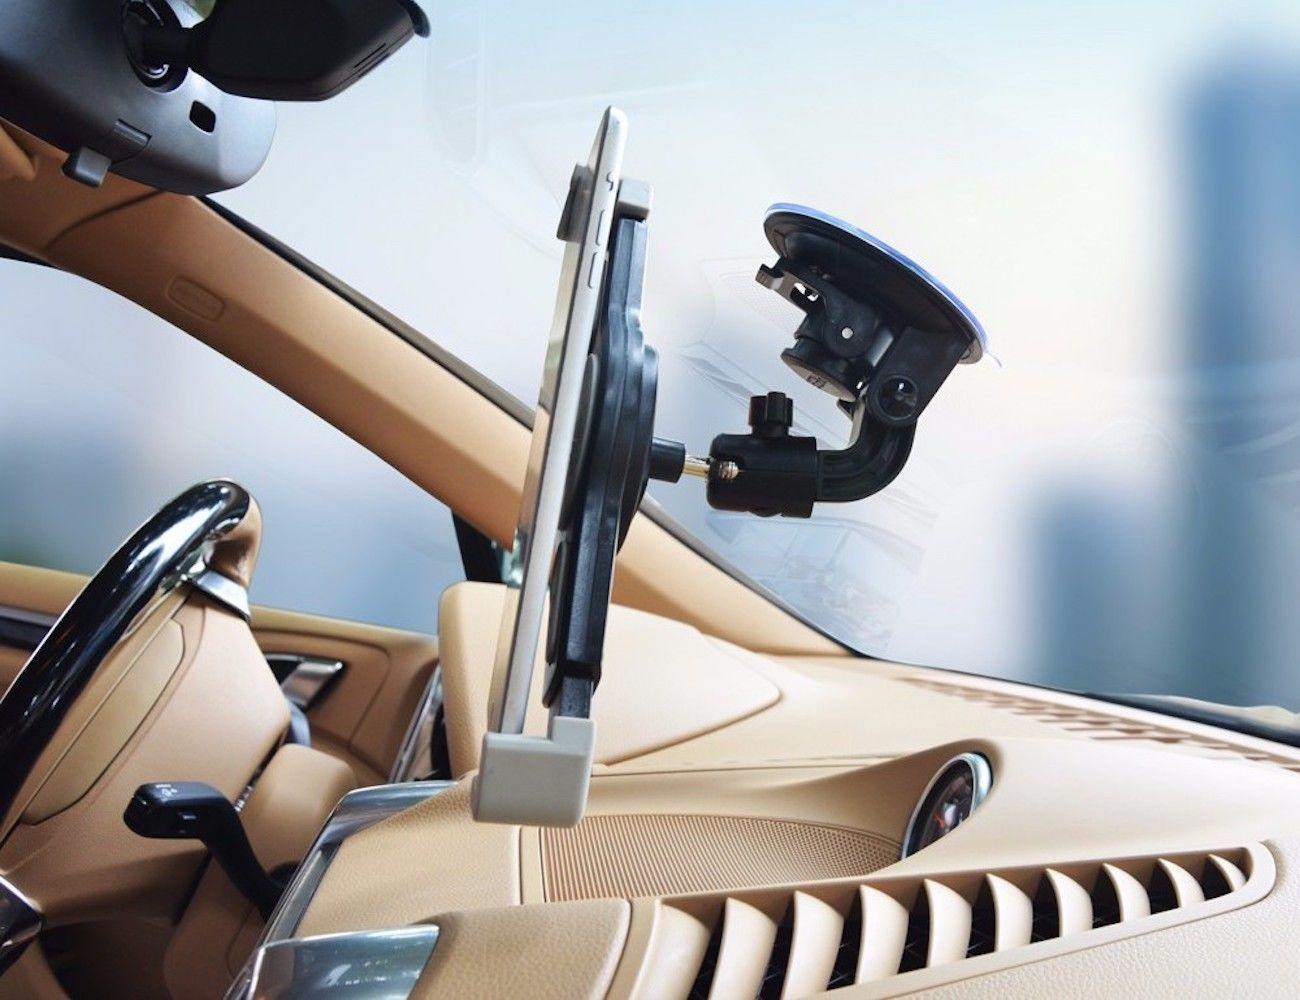 Windshield Tablet Mount for Cars